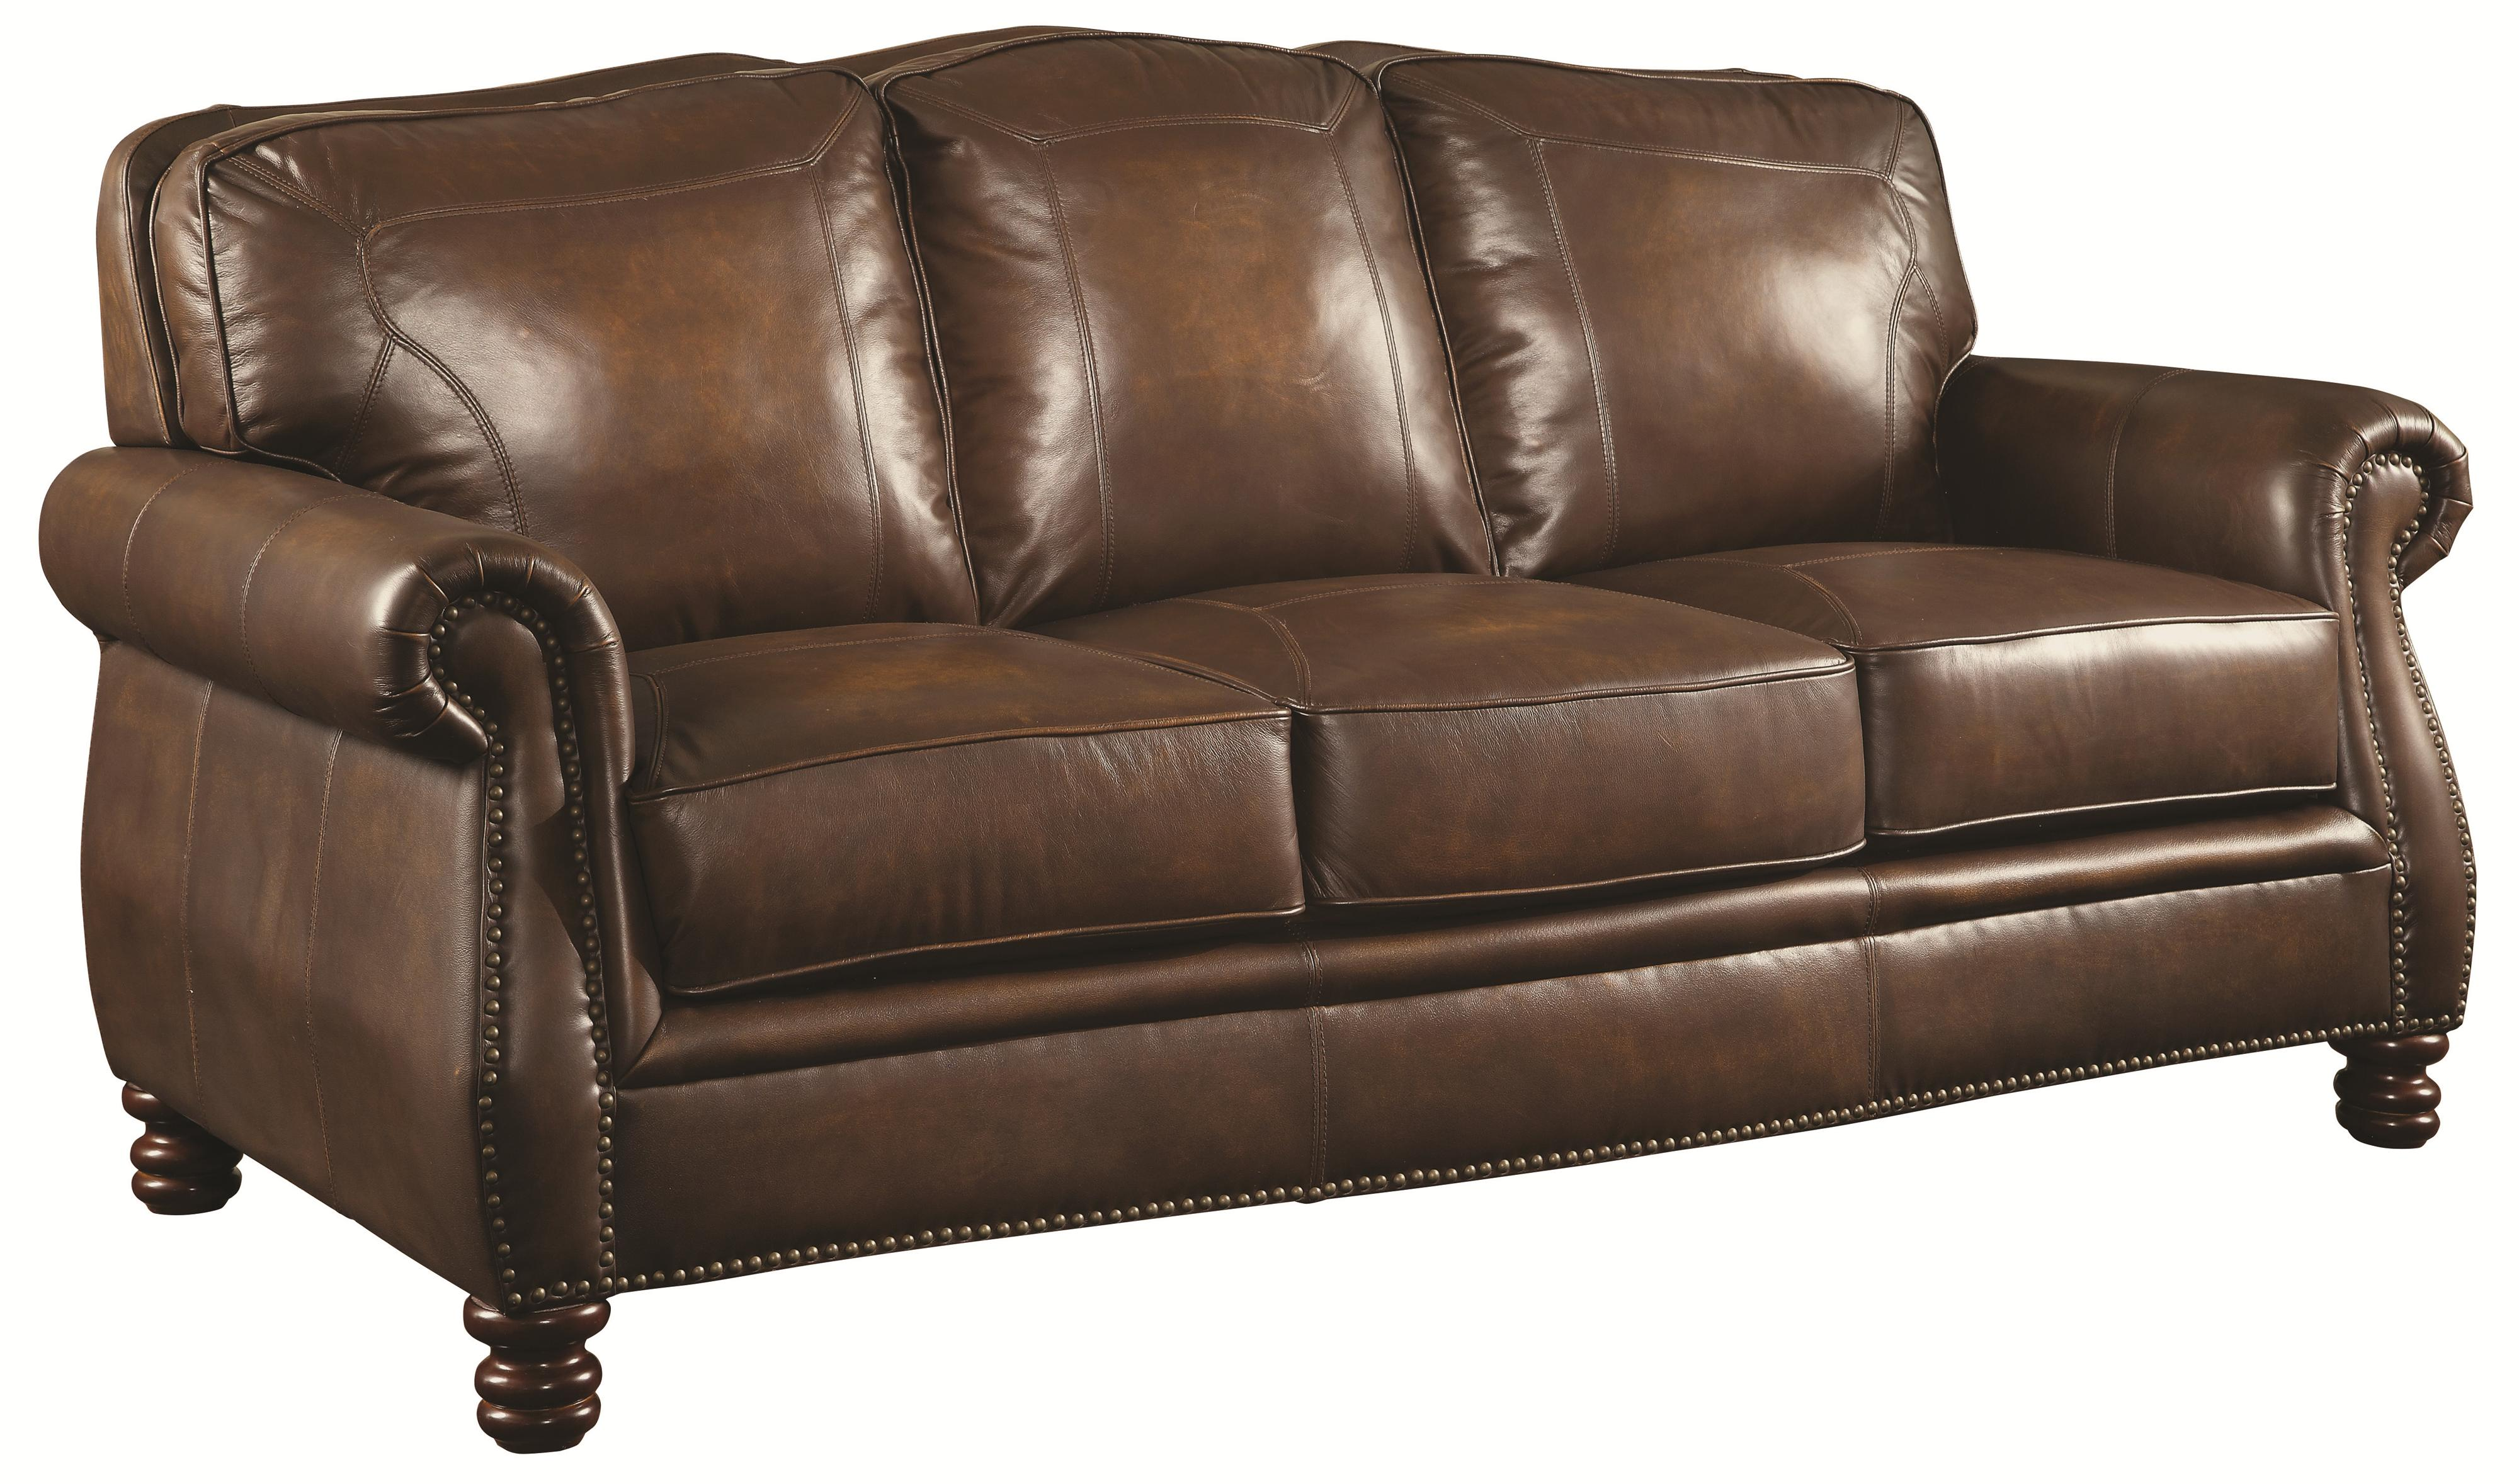 Coaster montbrook 503981 traditional sofa with rolled arms for Traditional sofa